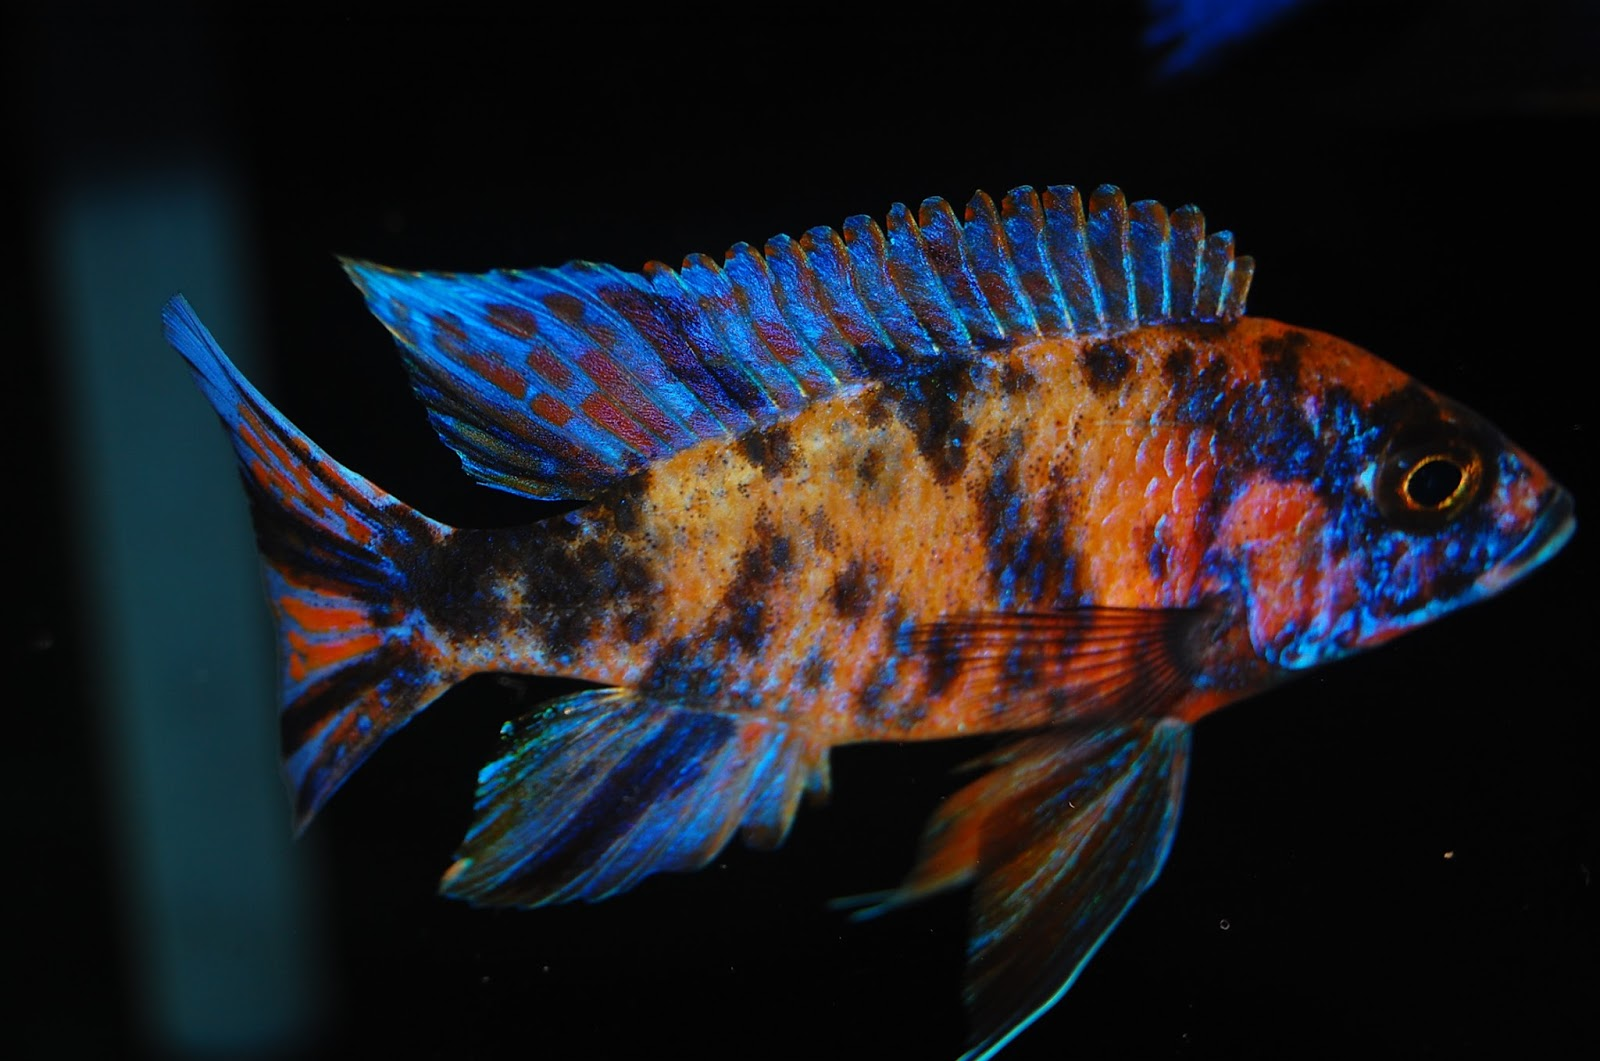 Ruby red cichlid female - photo#8